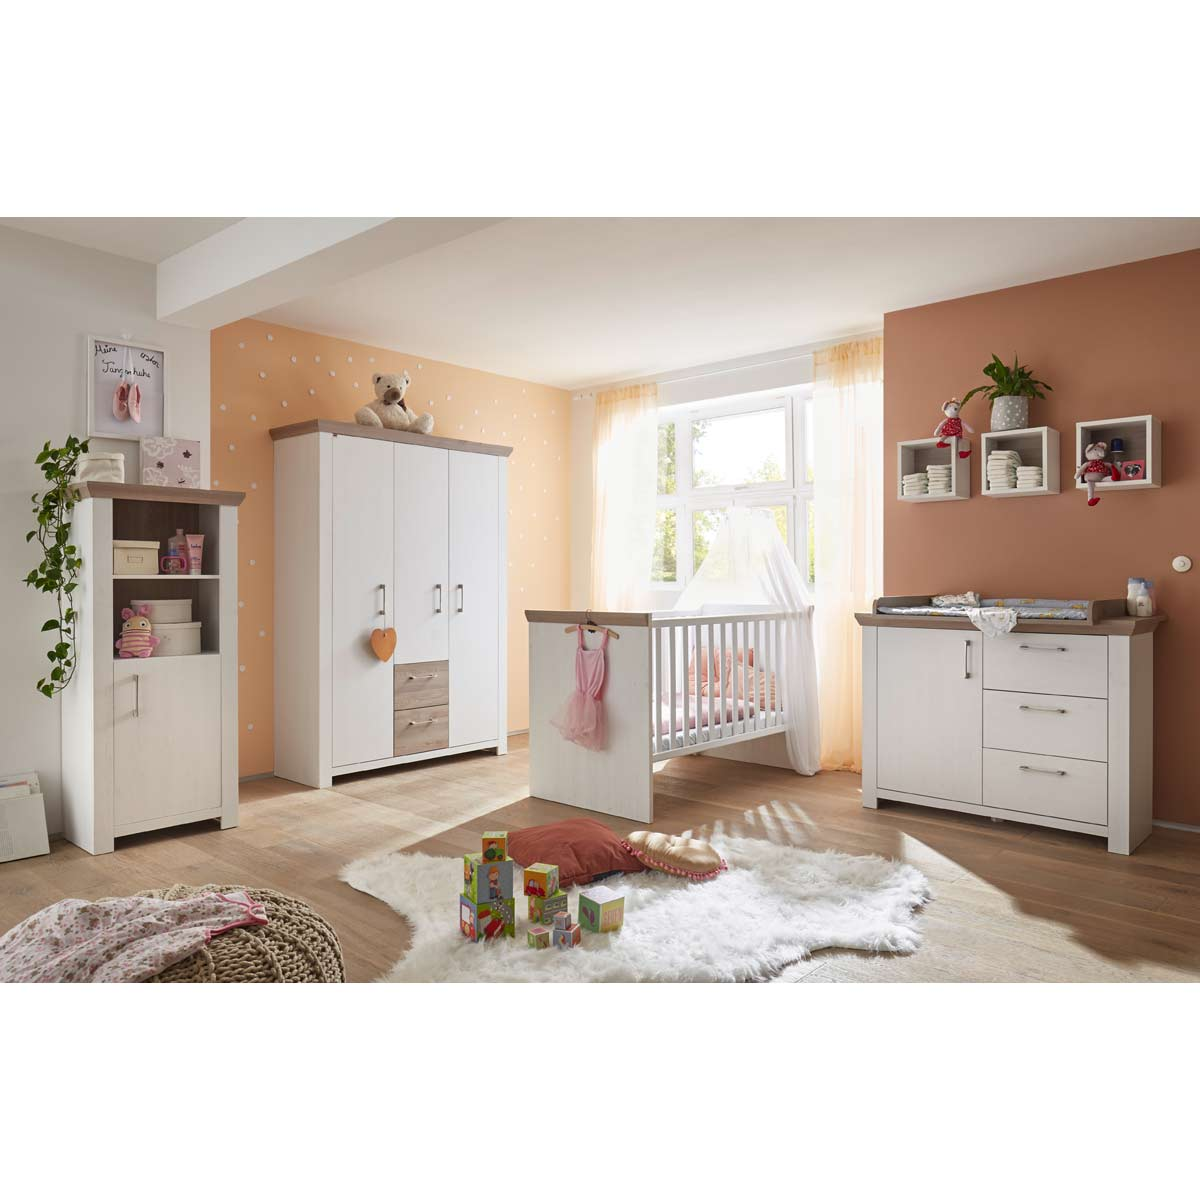 m usbacher new york kinderzimmer jetzt neu. Black Bedroom Furniture Sets. Home Design Ideas